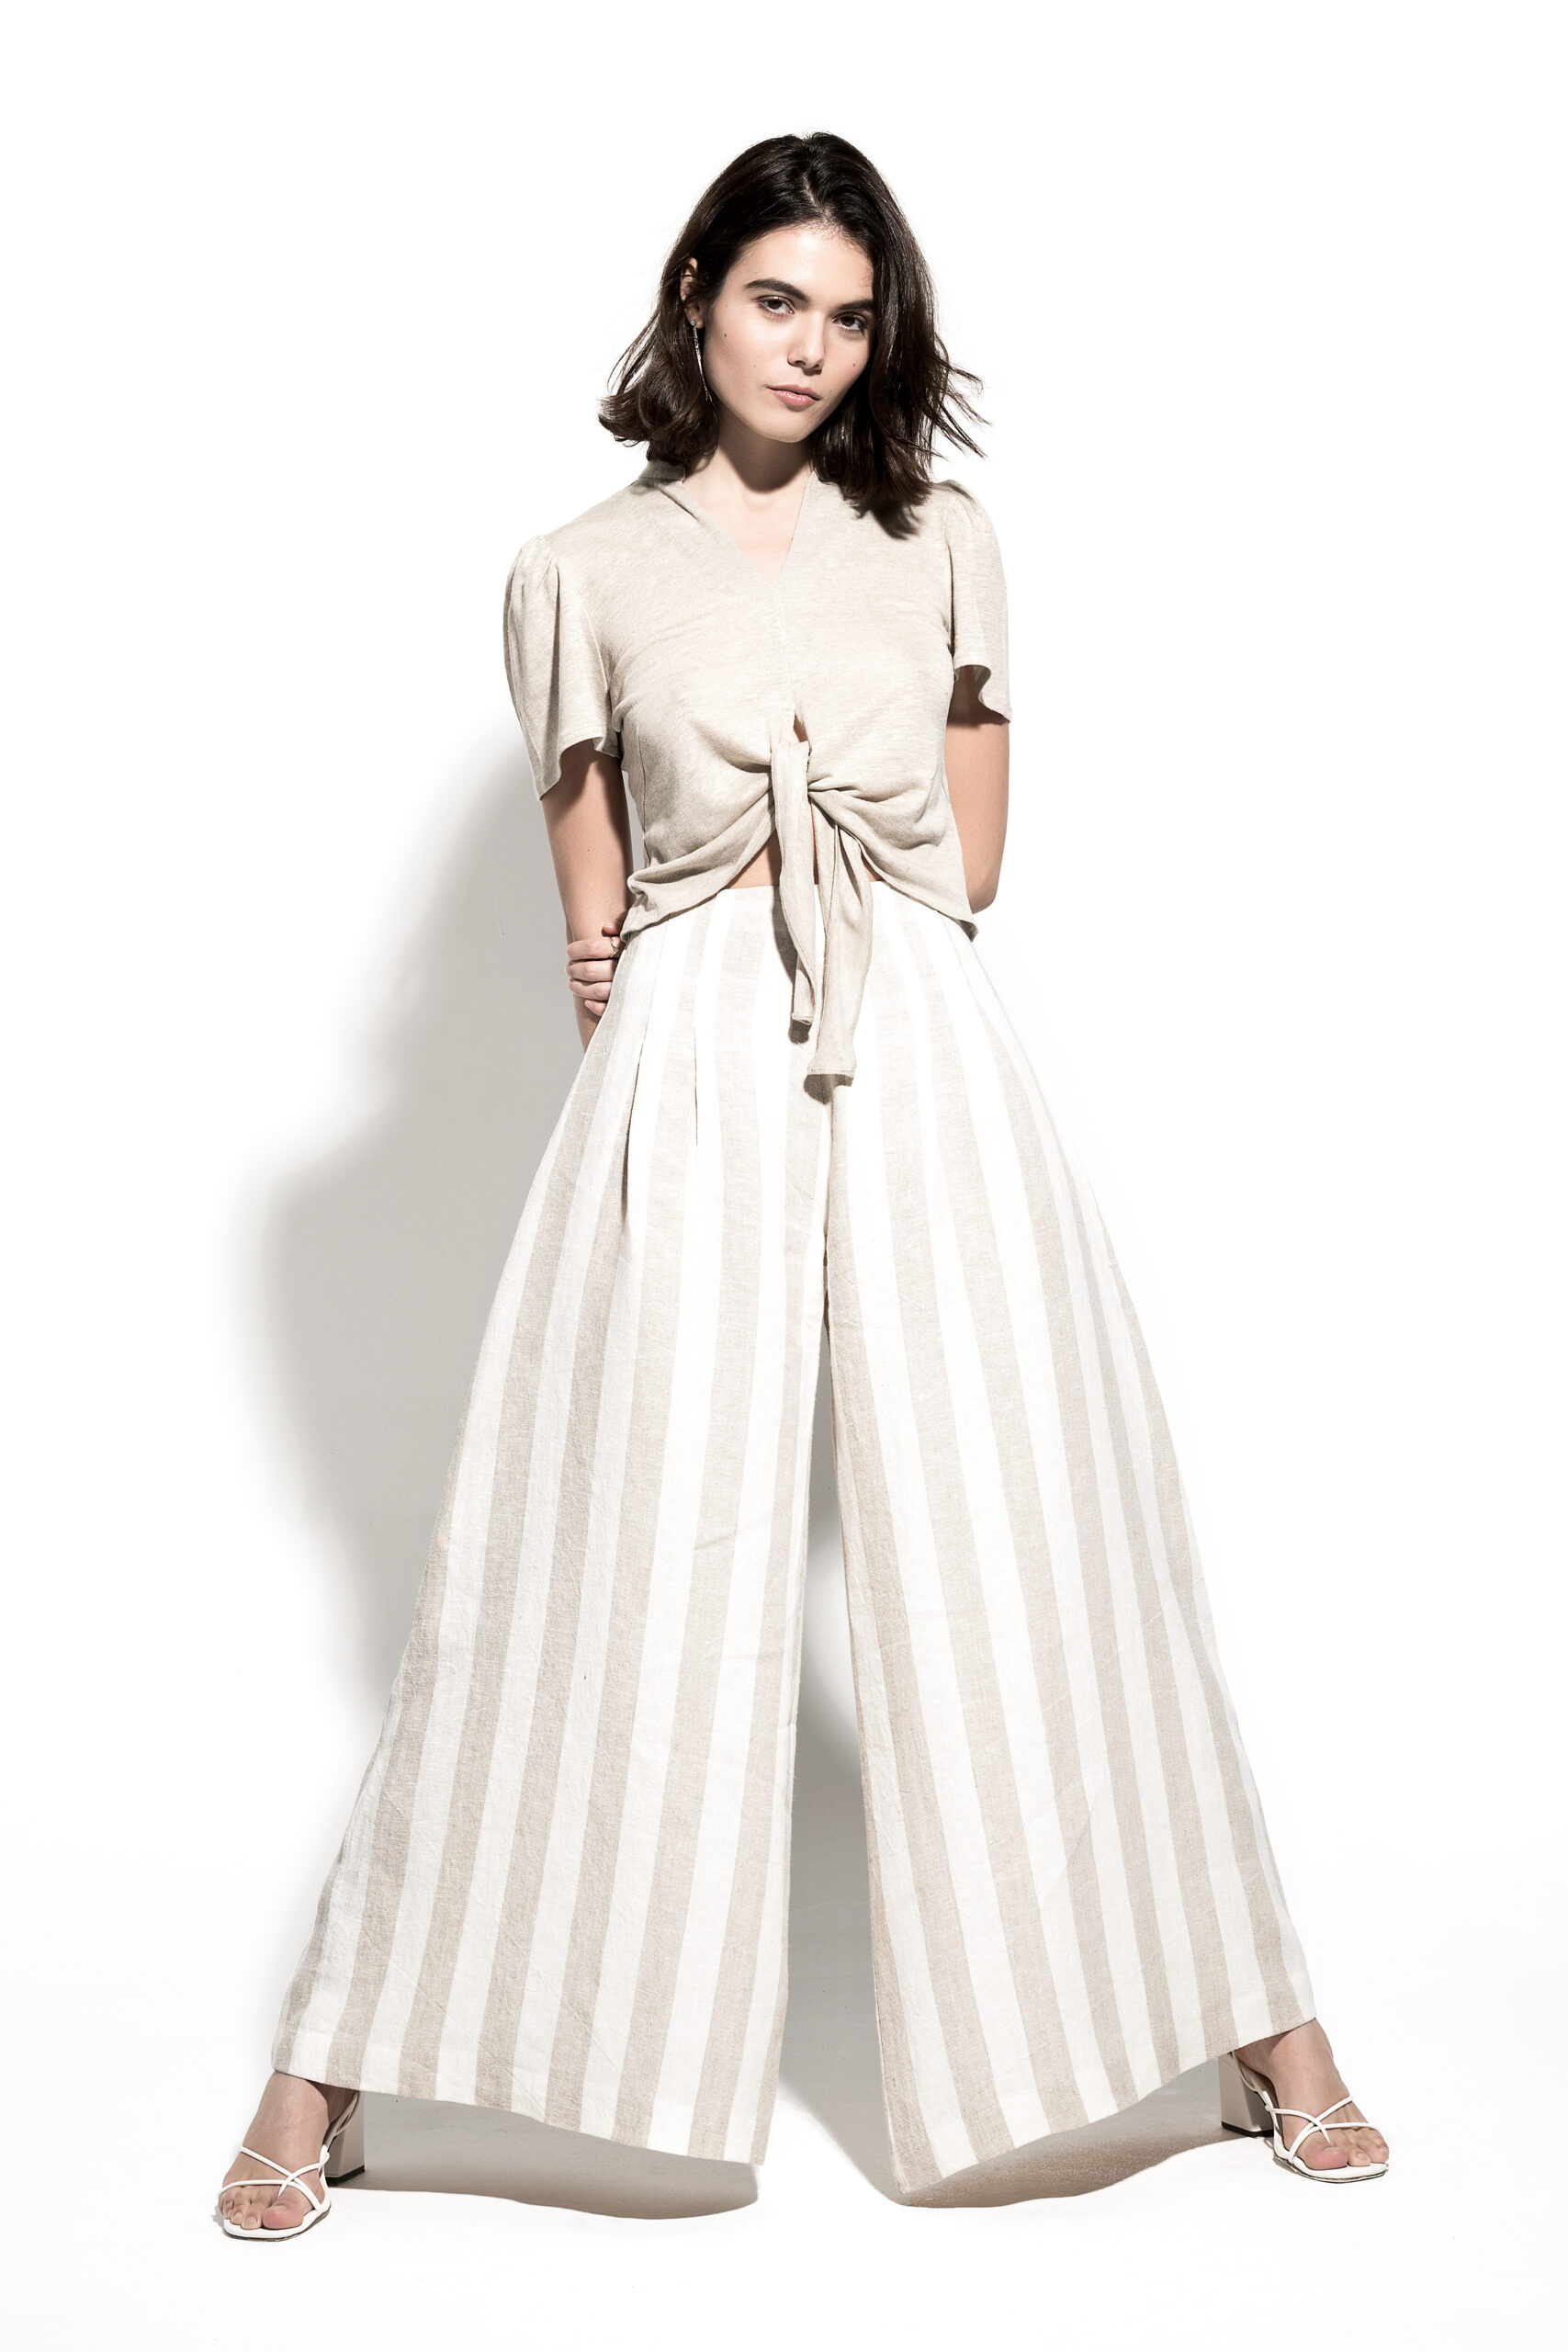 linen sustainable pants whit line prints in off white